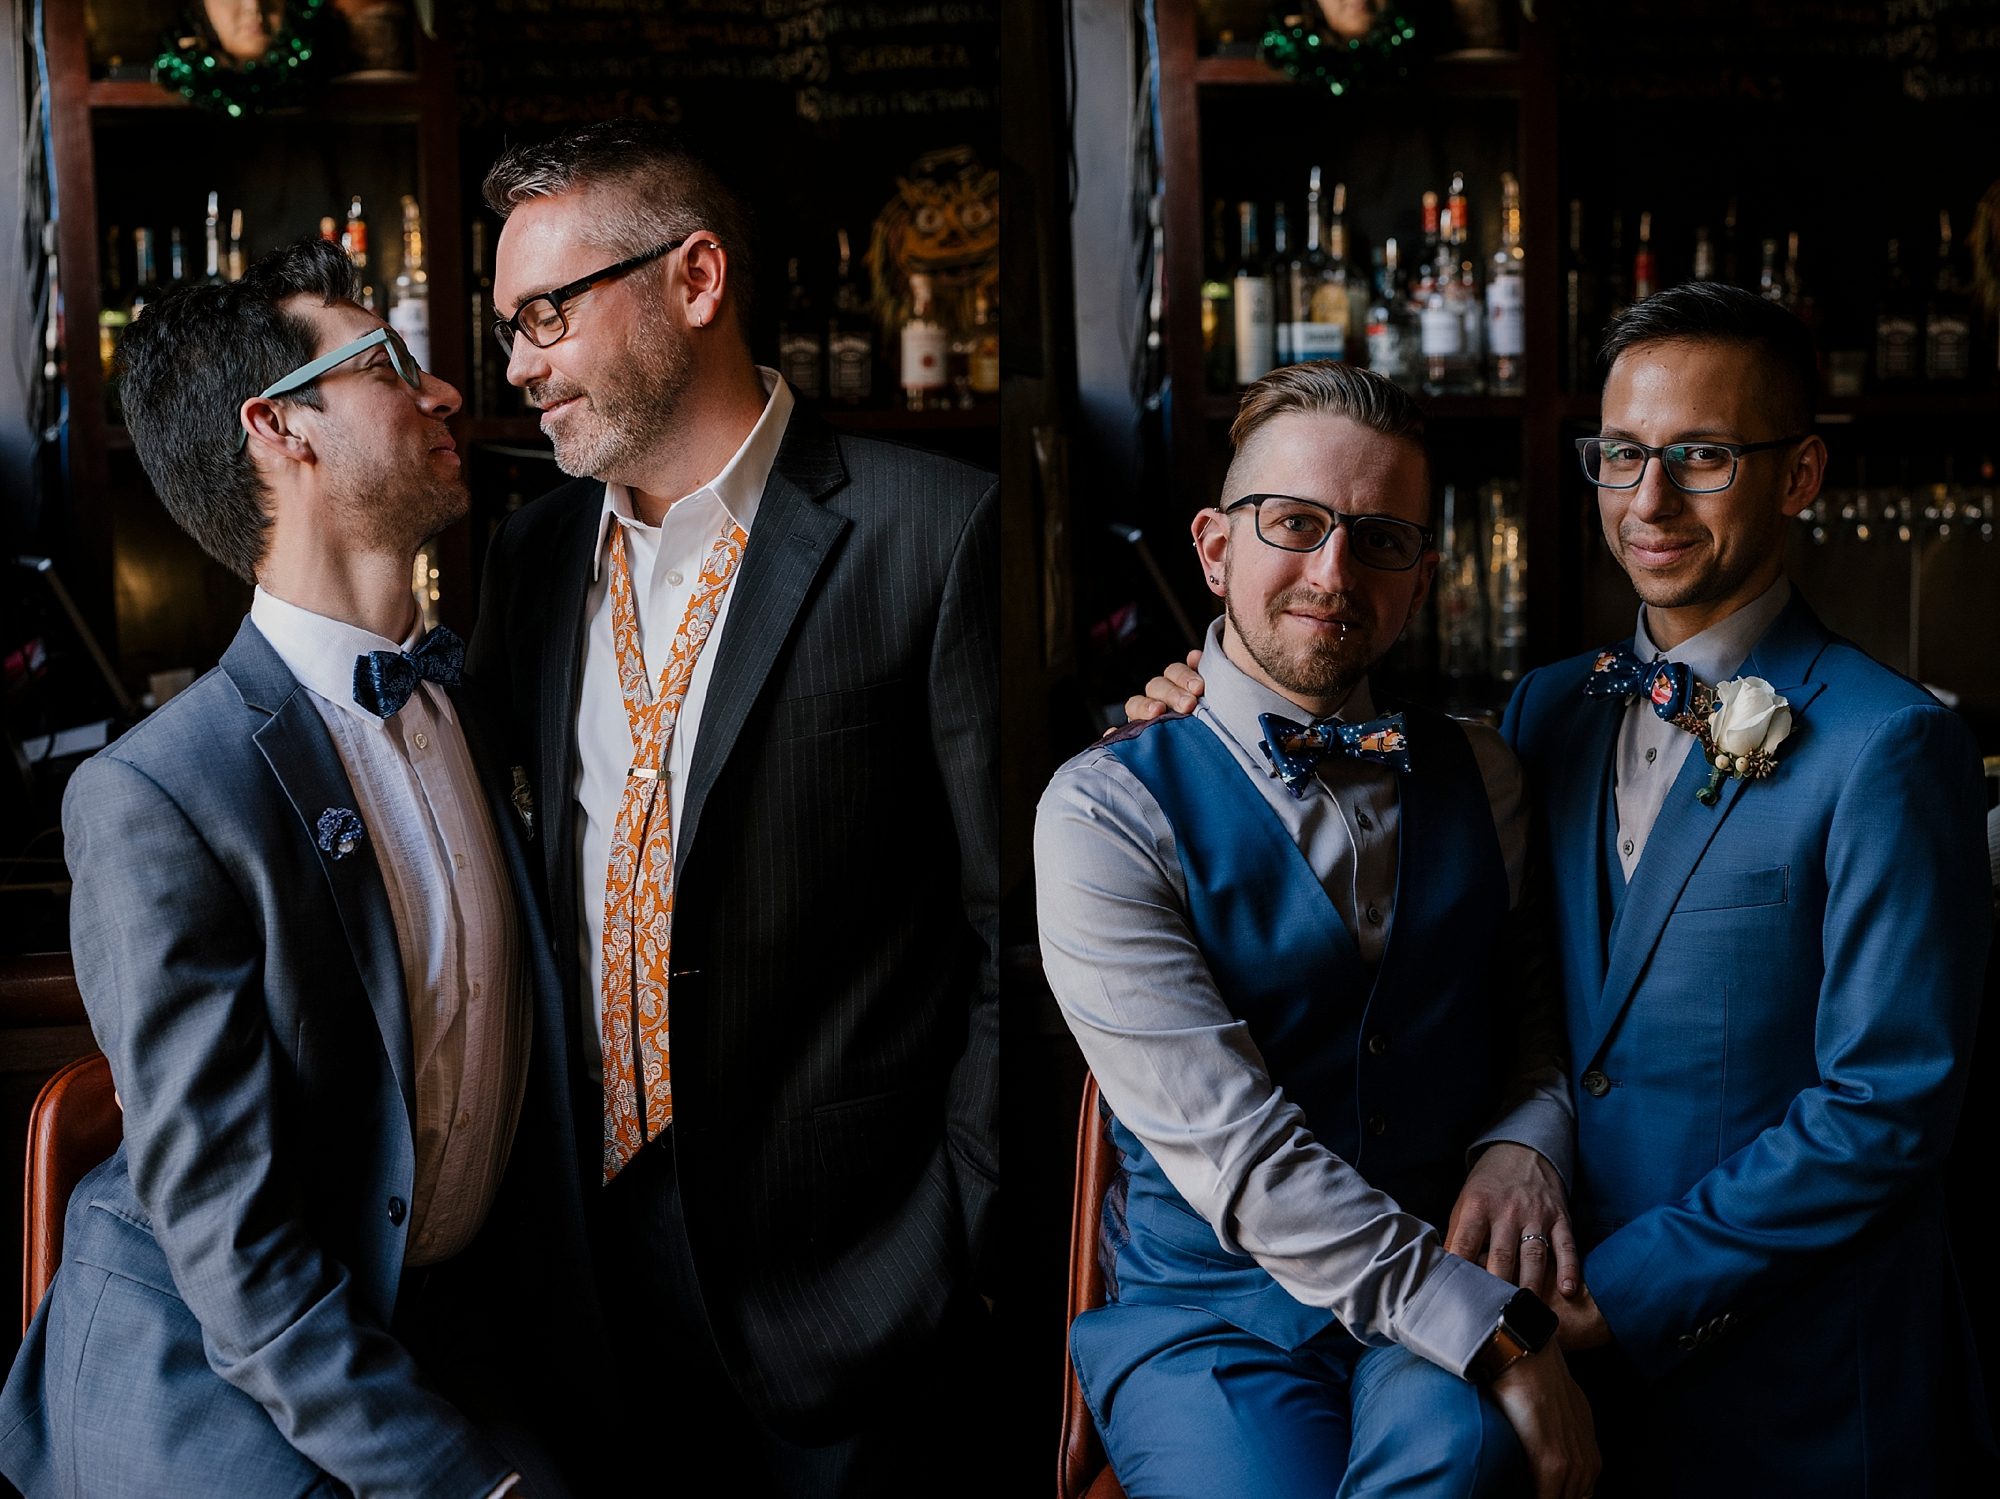 Joe_Mac_Creative_Philadelphia_Philly_LGBT_Gay_Engagement_Wedding_Photography__0136.jpg